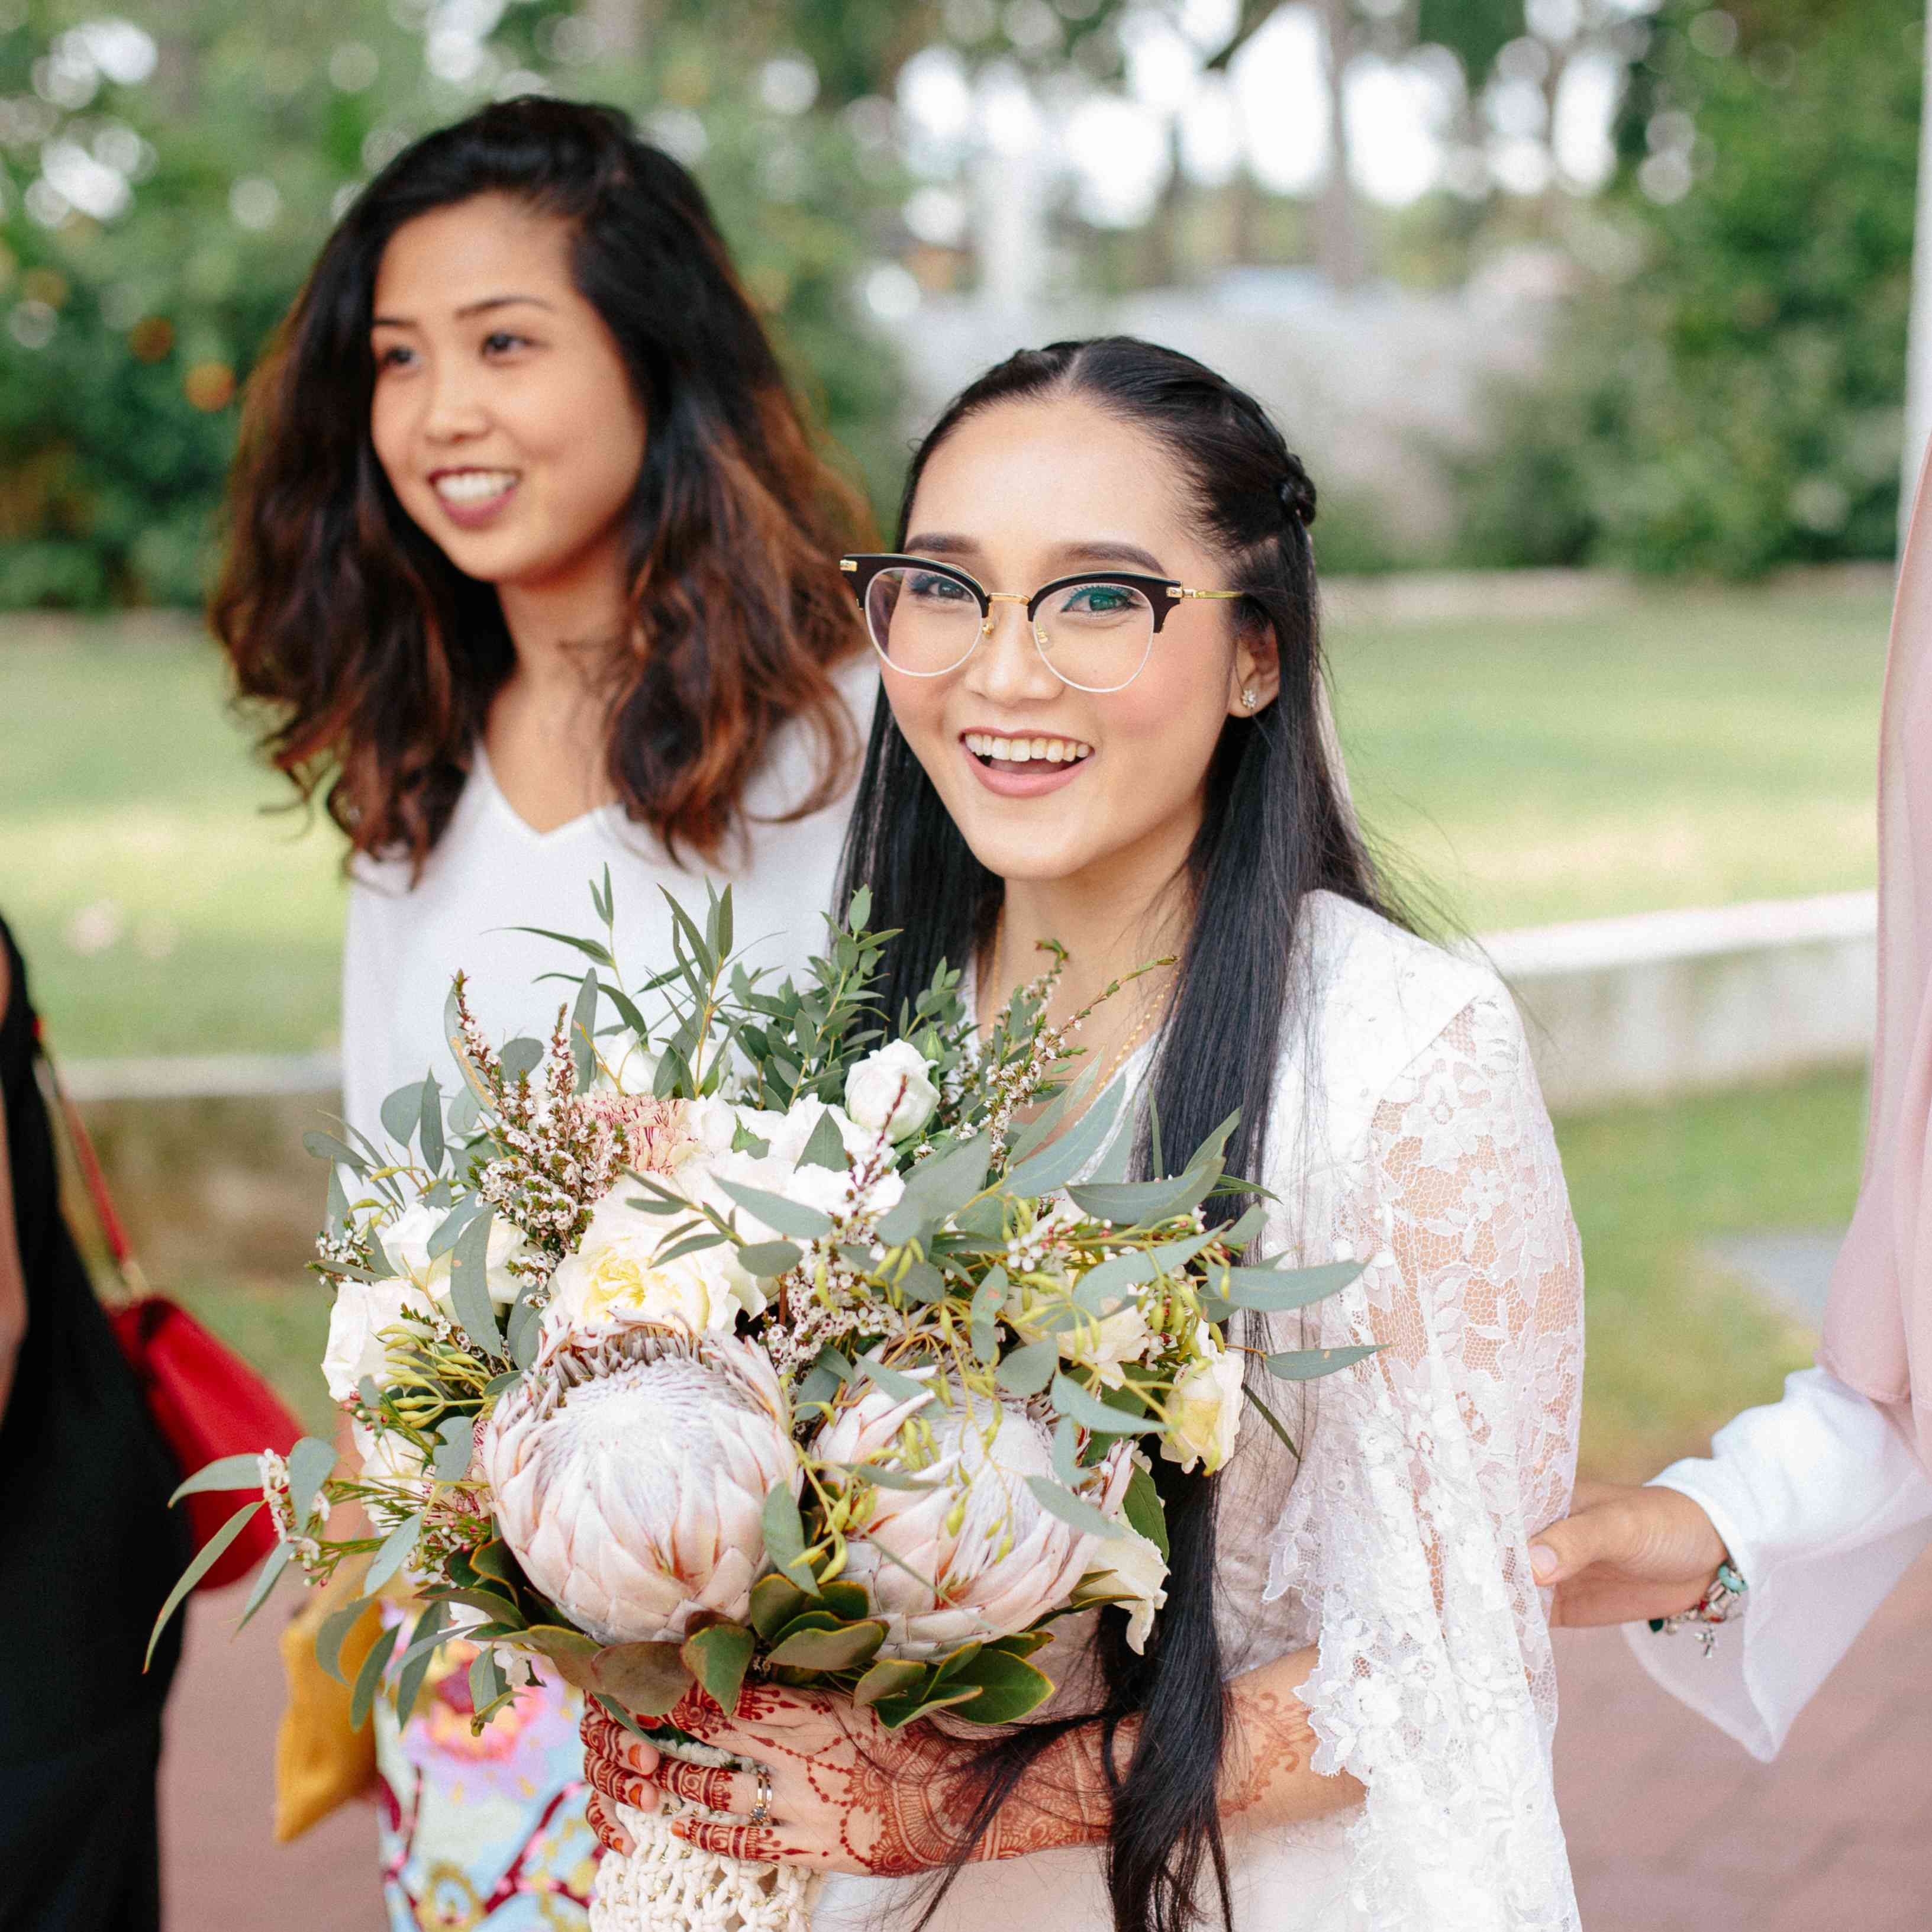 Bride wearing semi-rimmed glasses holding her bouquet and smiling